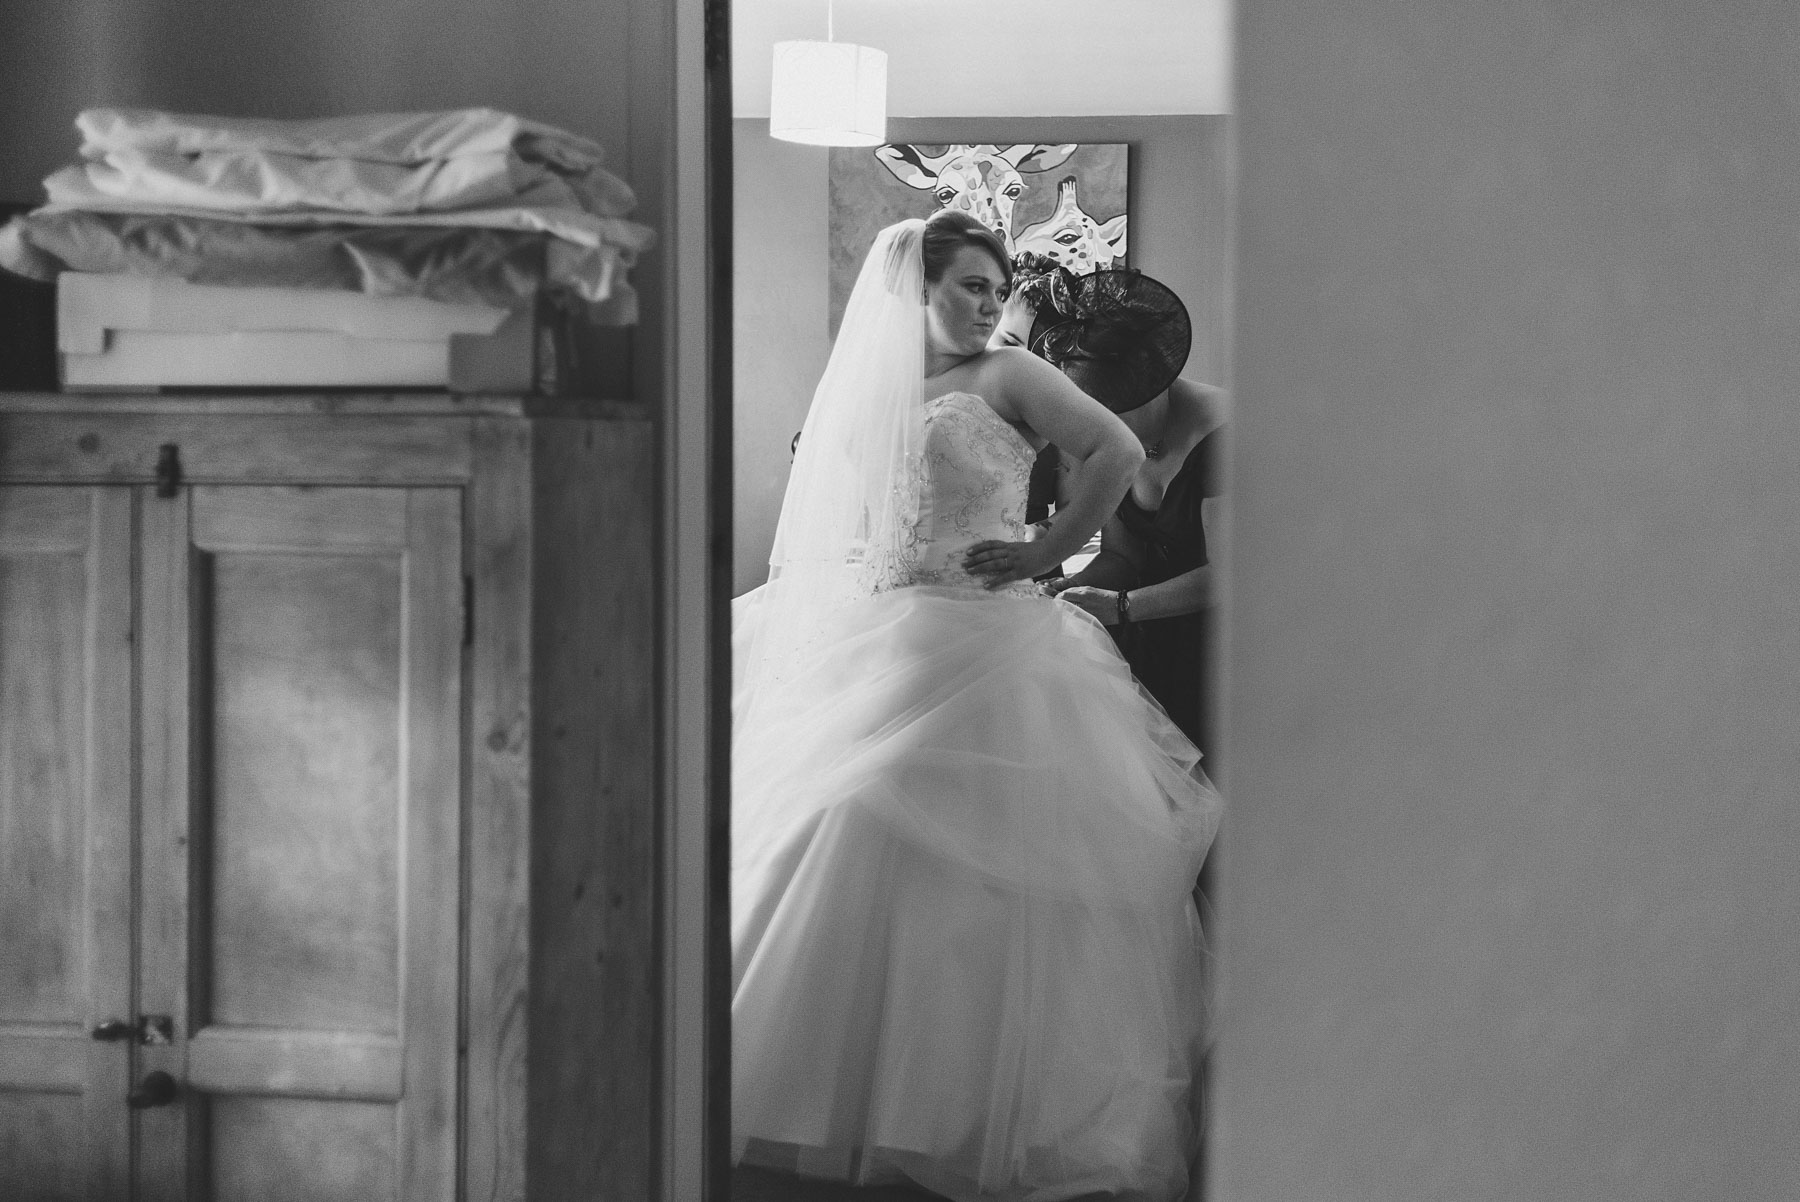 Bride getting into her dress in the morning